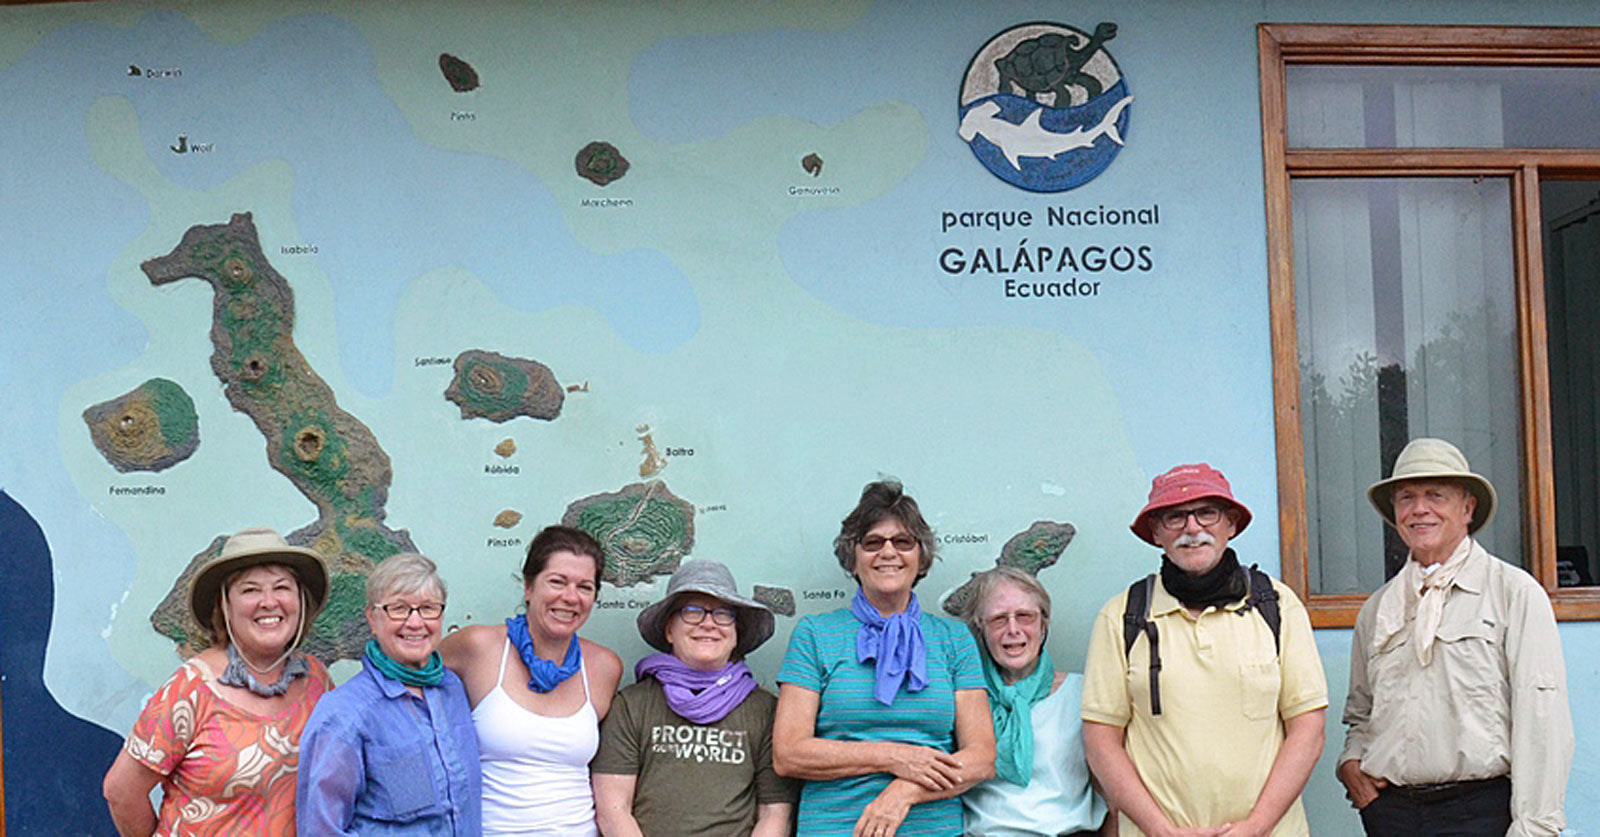 a group of men and women standing against a map of the Galpagos wearing WrapMeCools